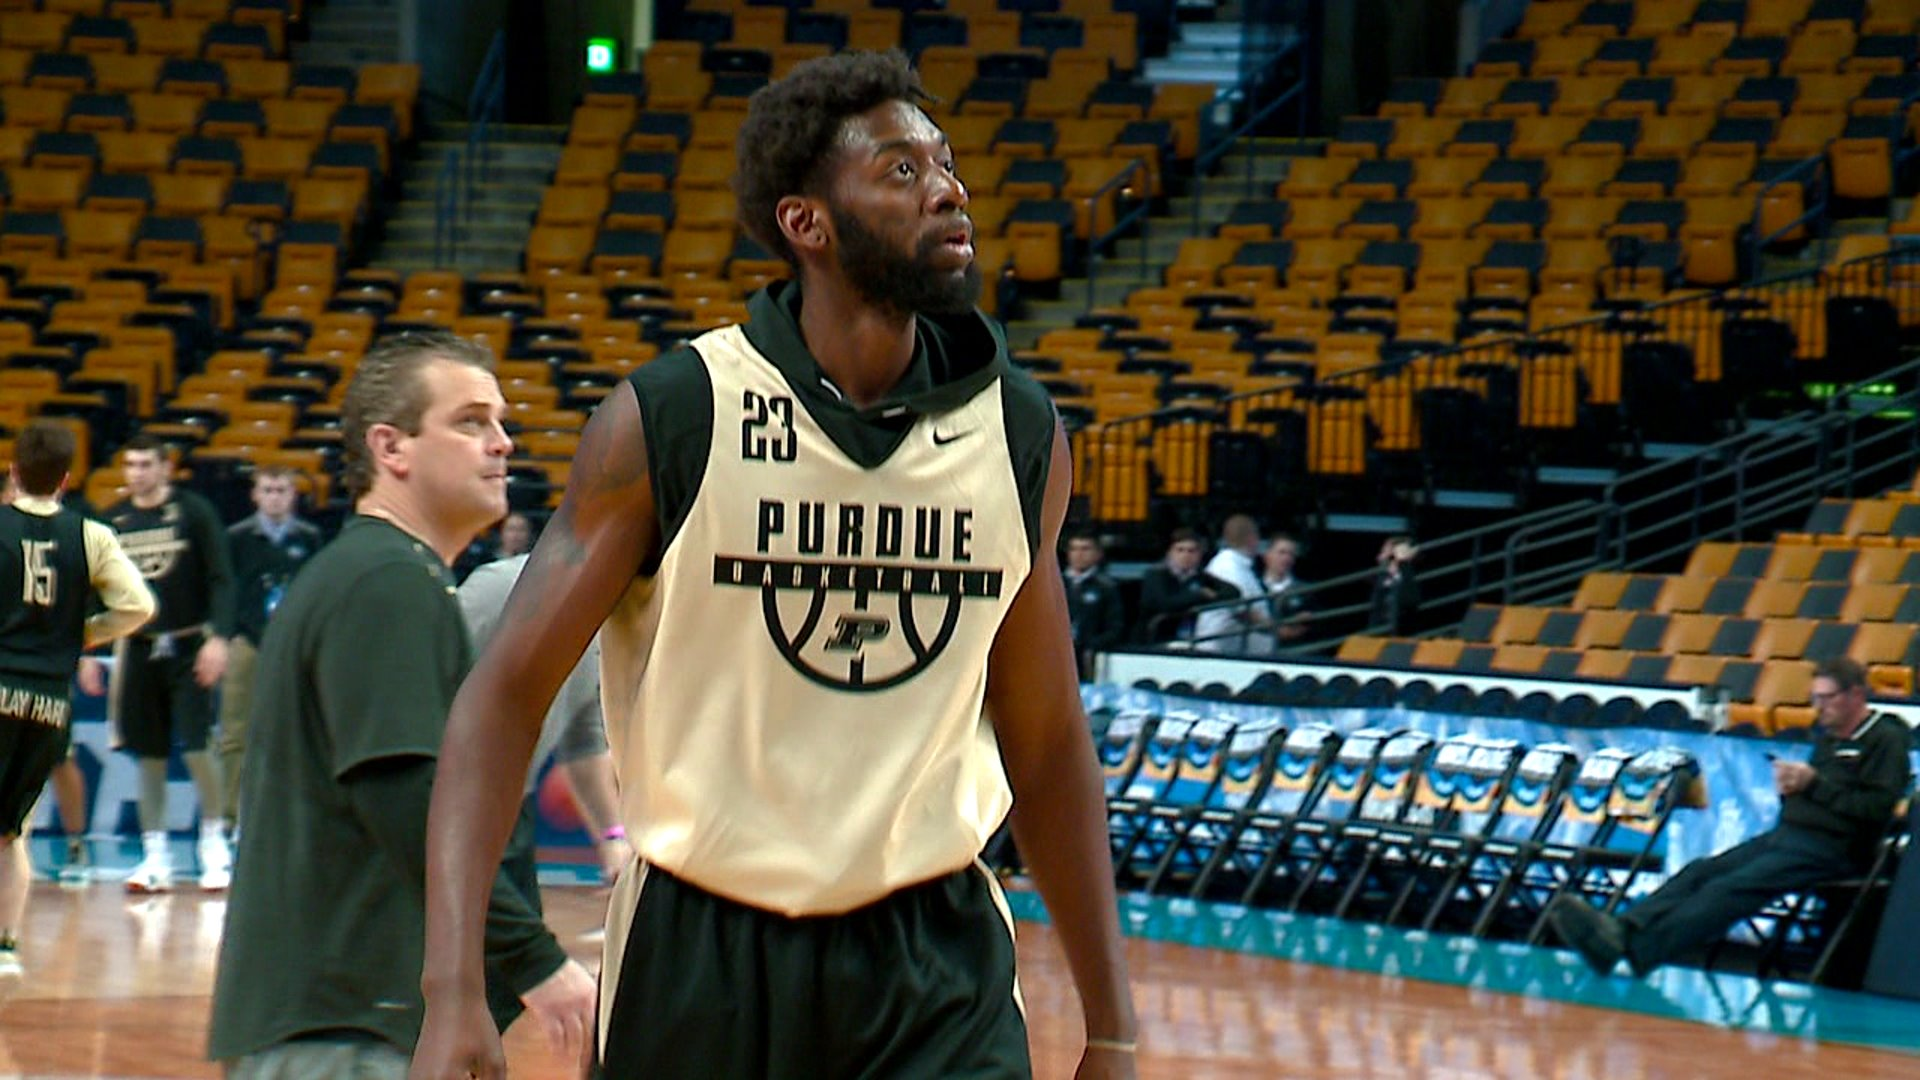 Purdue's Taylor looks to contribute in Boston homecoming | WTTV ...